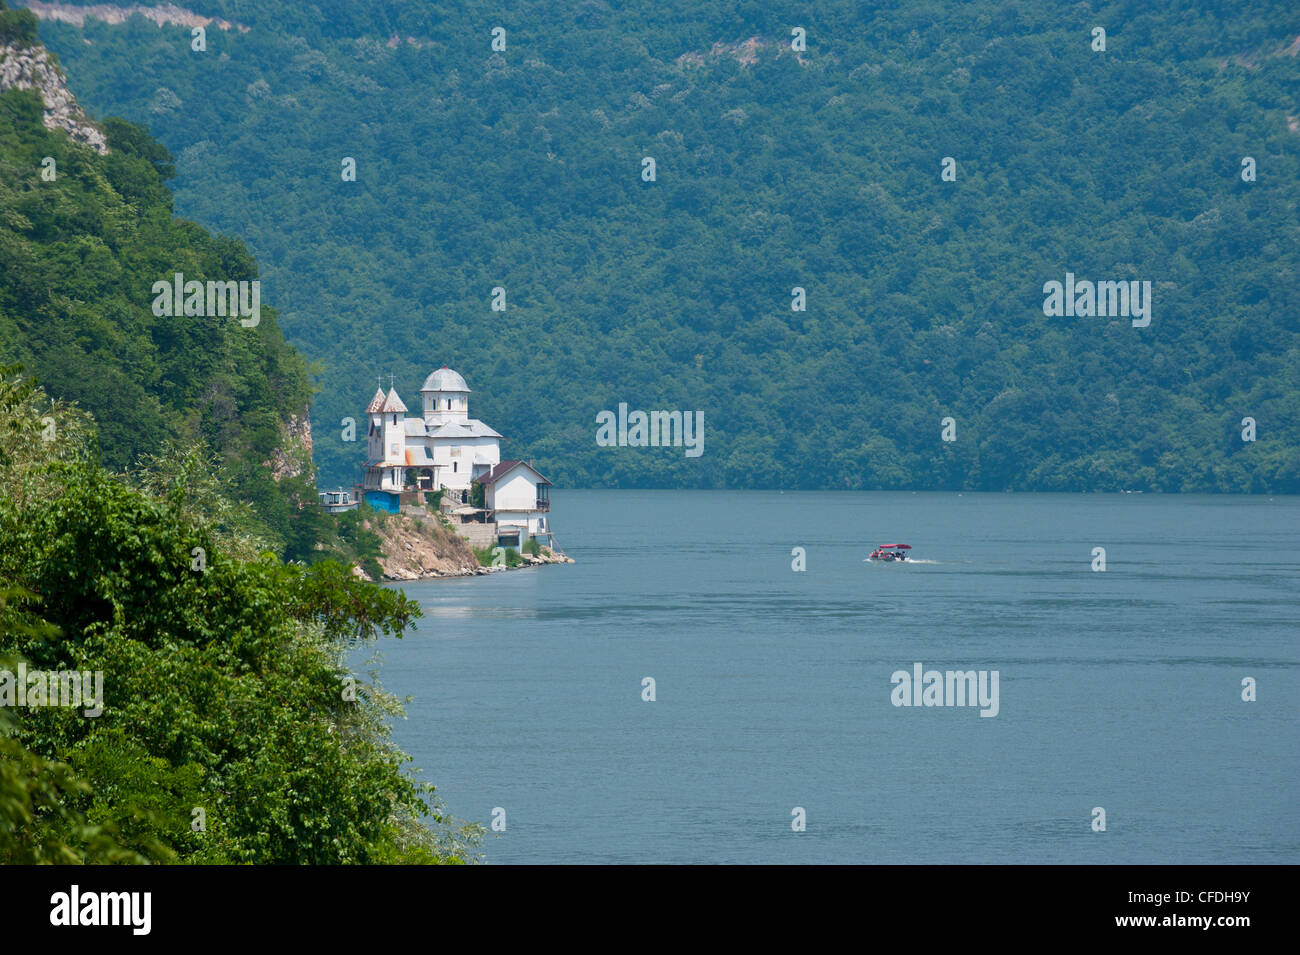 Portille de Fier (Iron gate), River Danube, Danube Valley, Romania, Europe - Stock Image